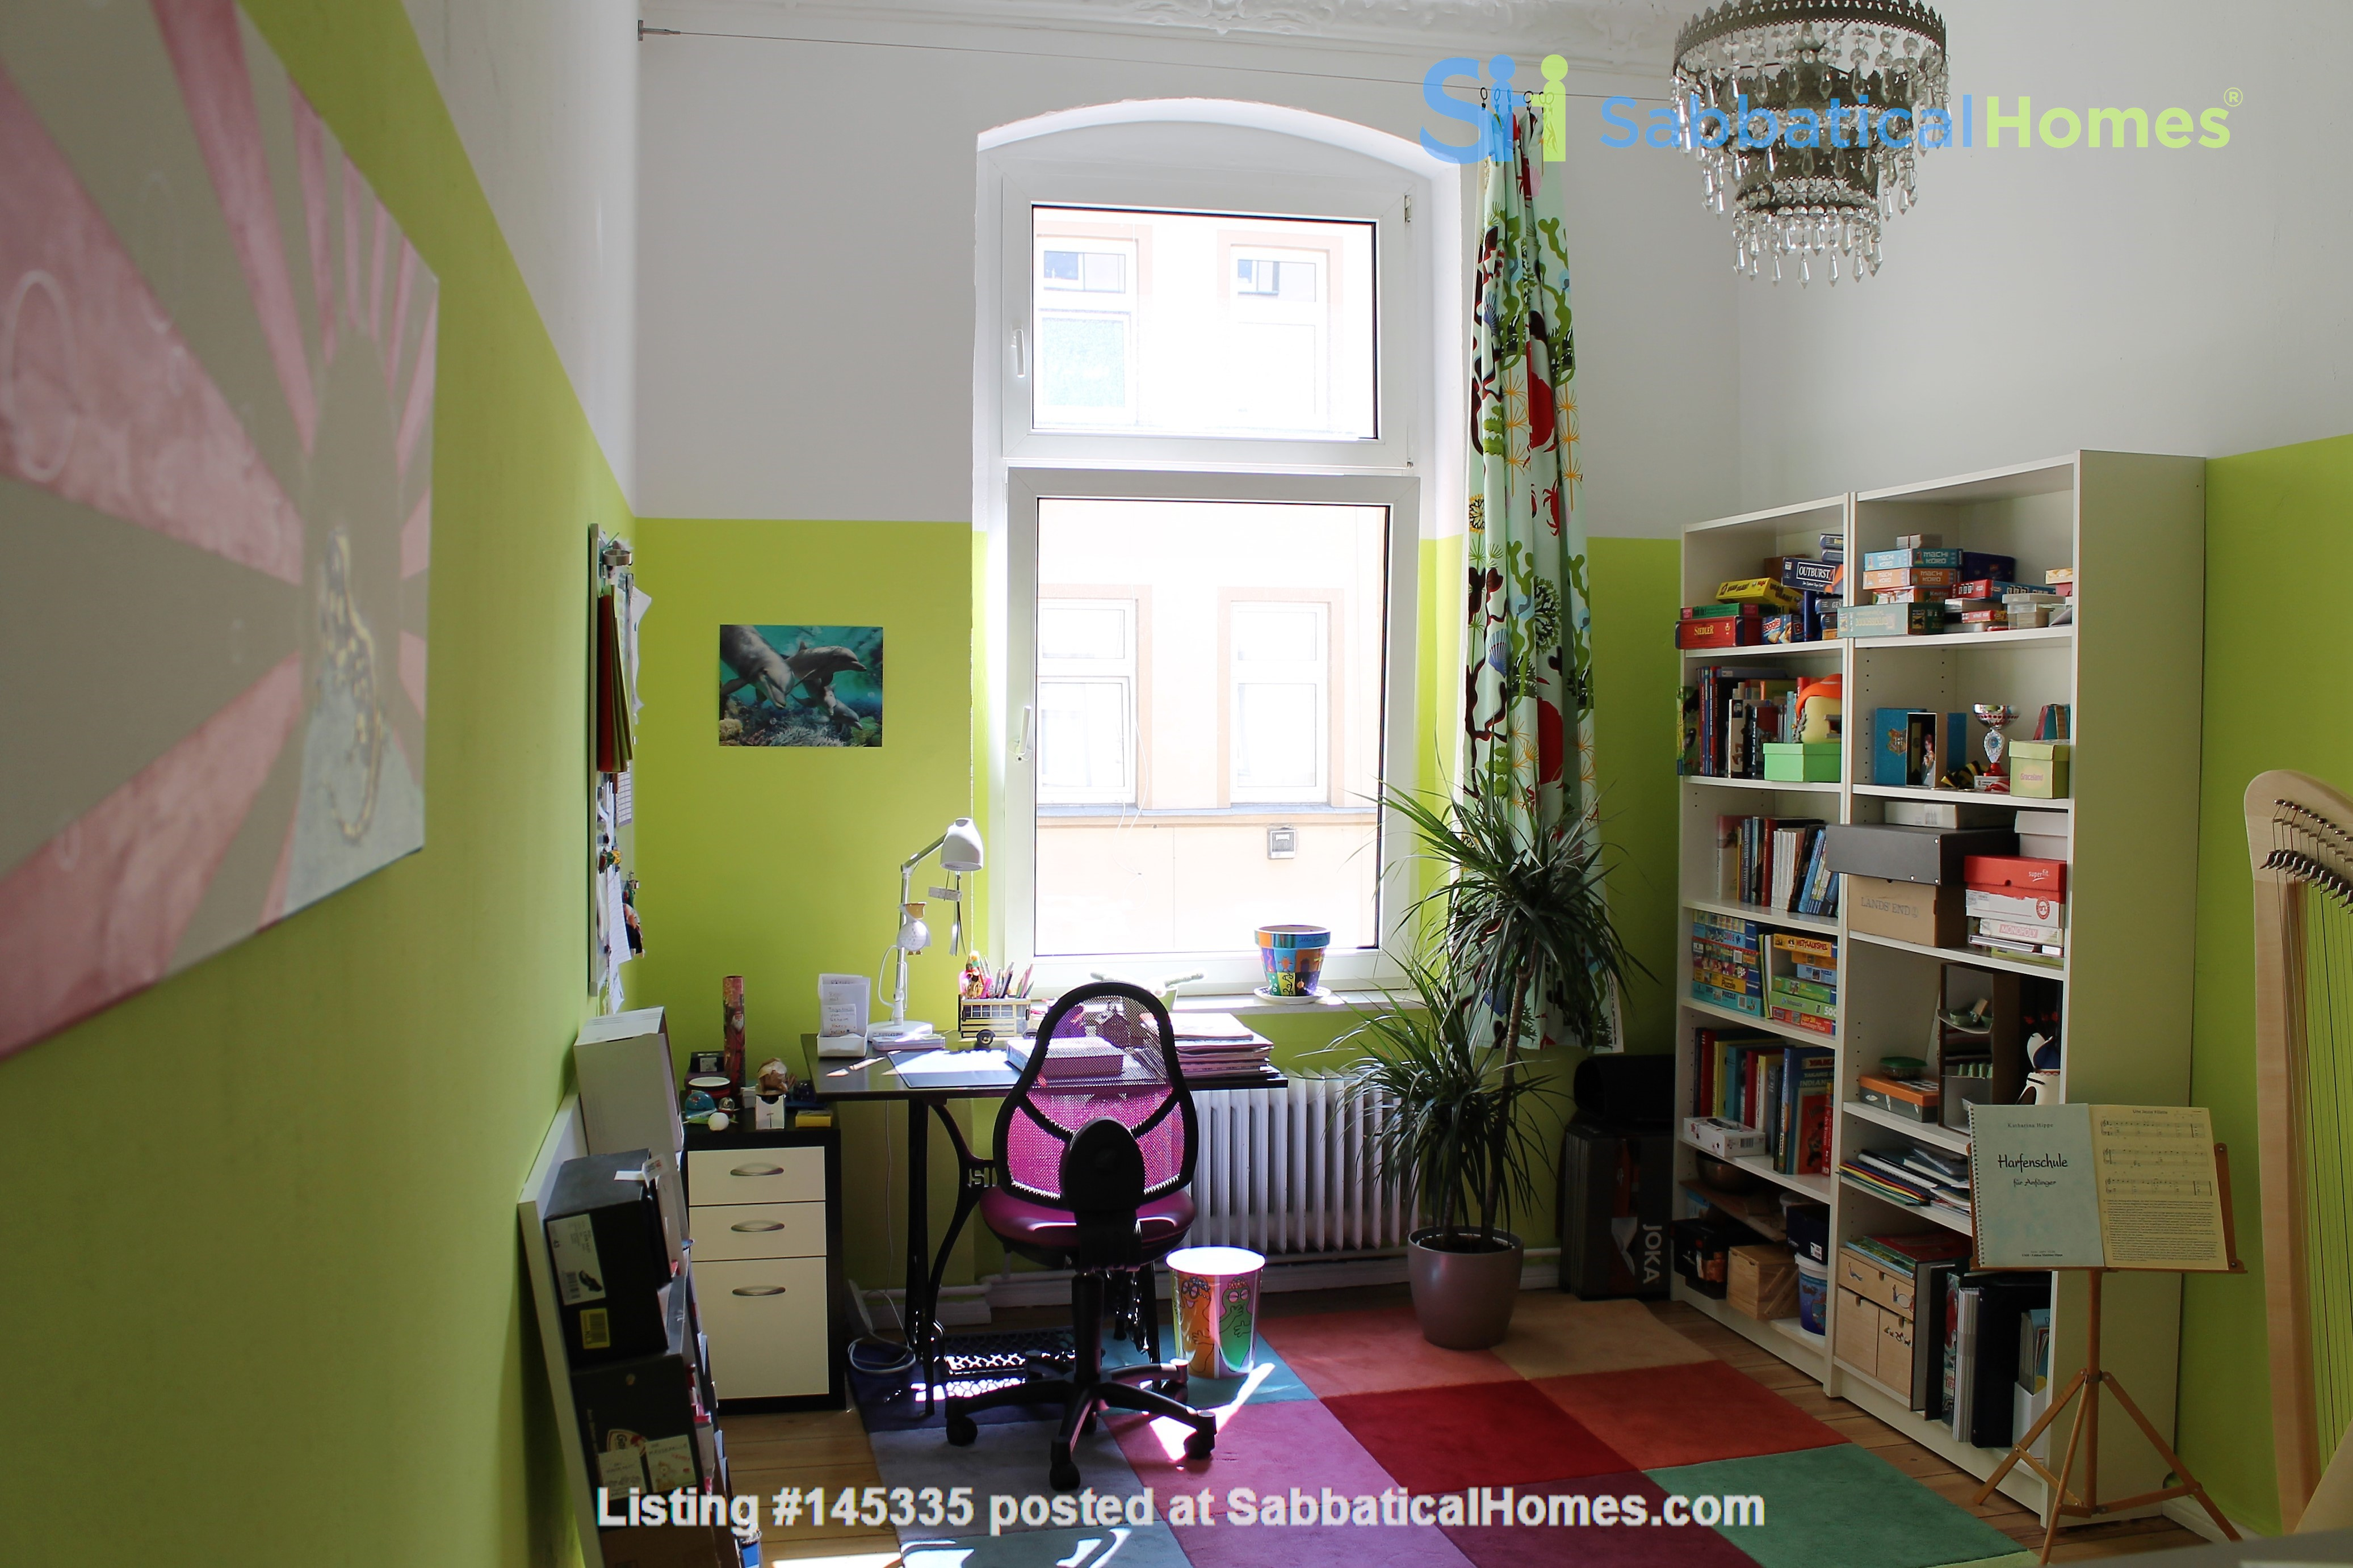 Family from Berlin planning 6 months abroad in Ireland Home Exchange in Berlin, Berlin, Germany 4